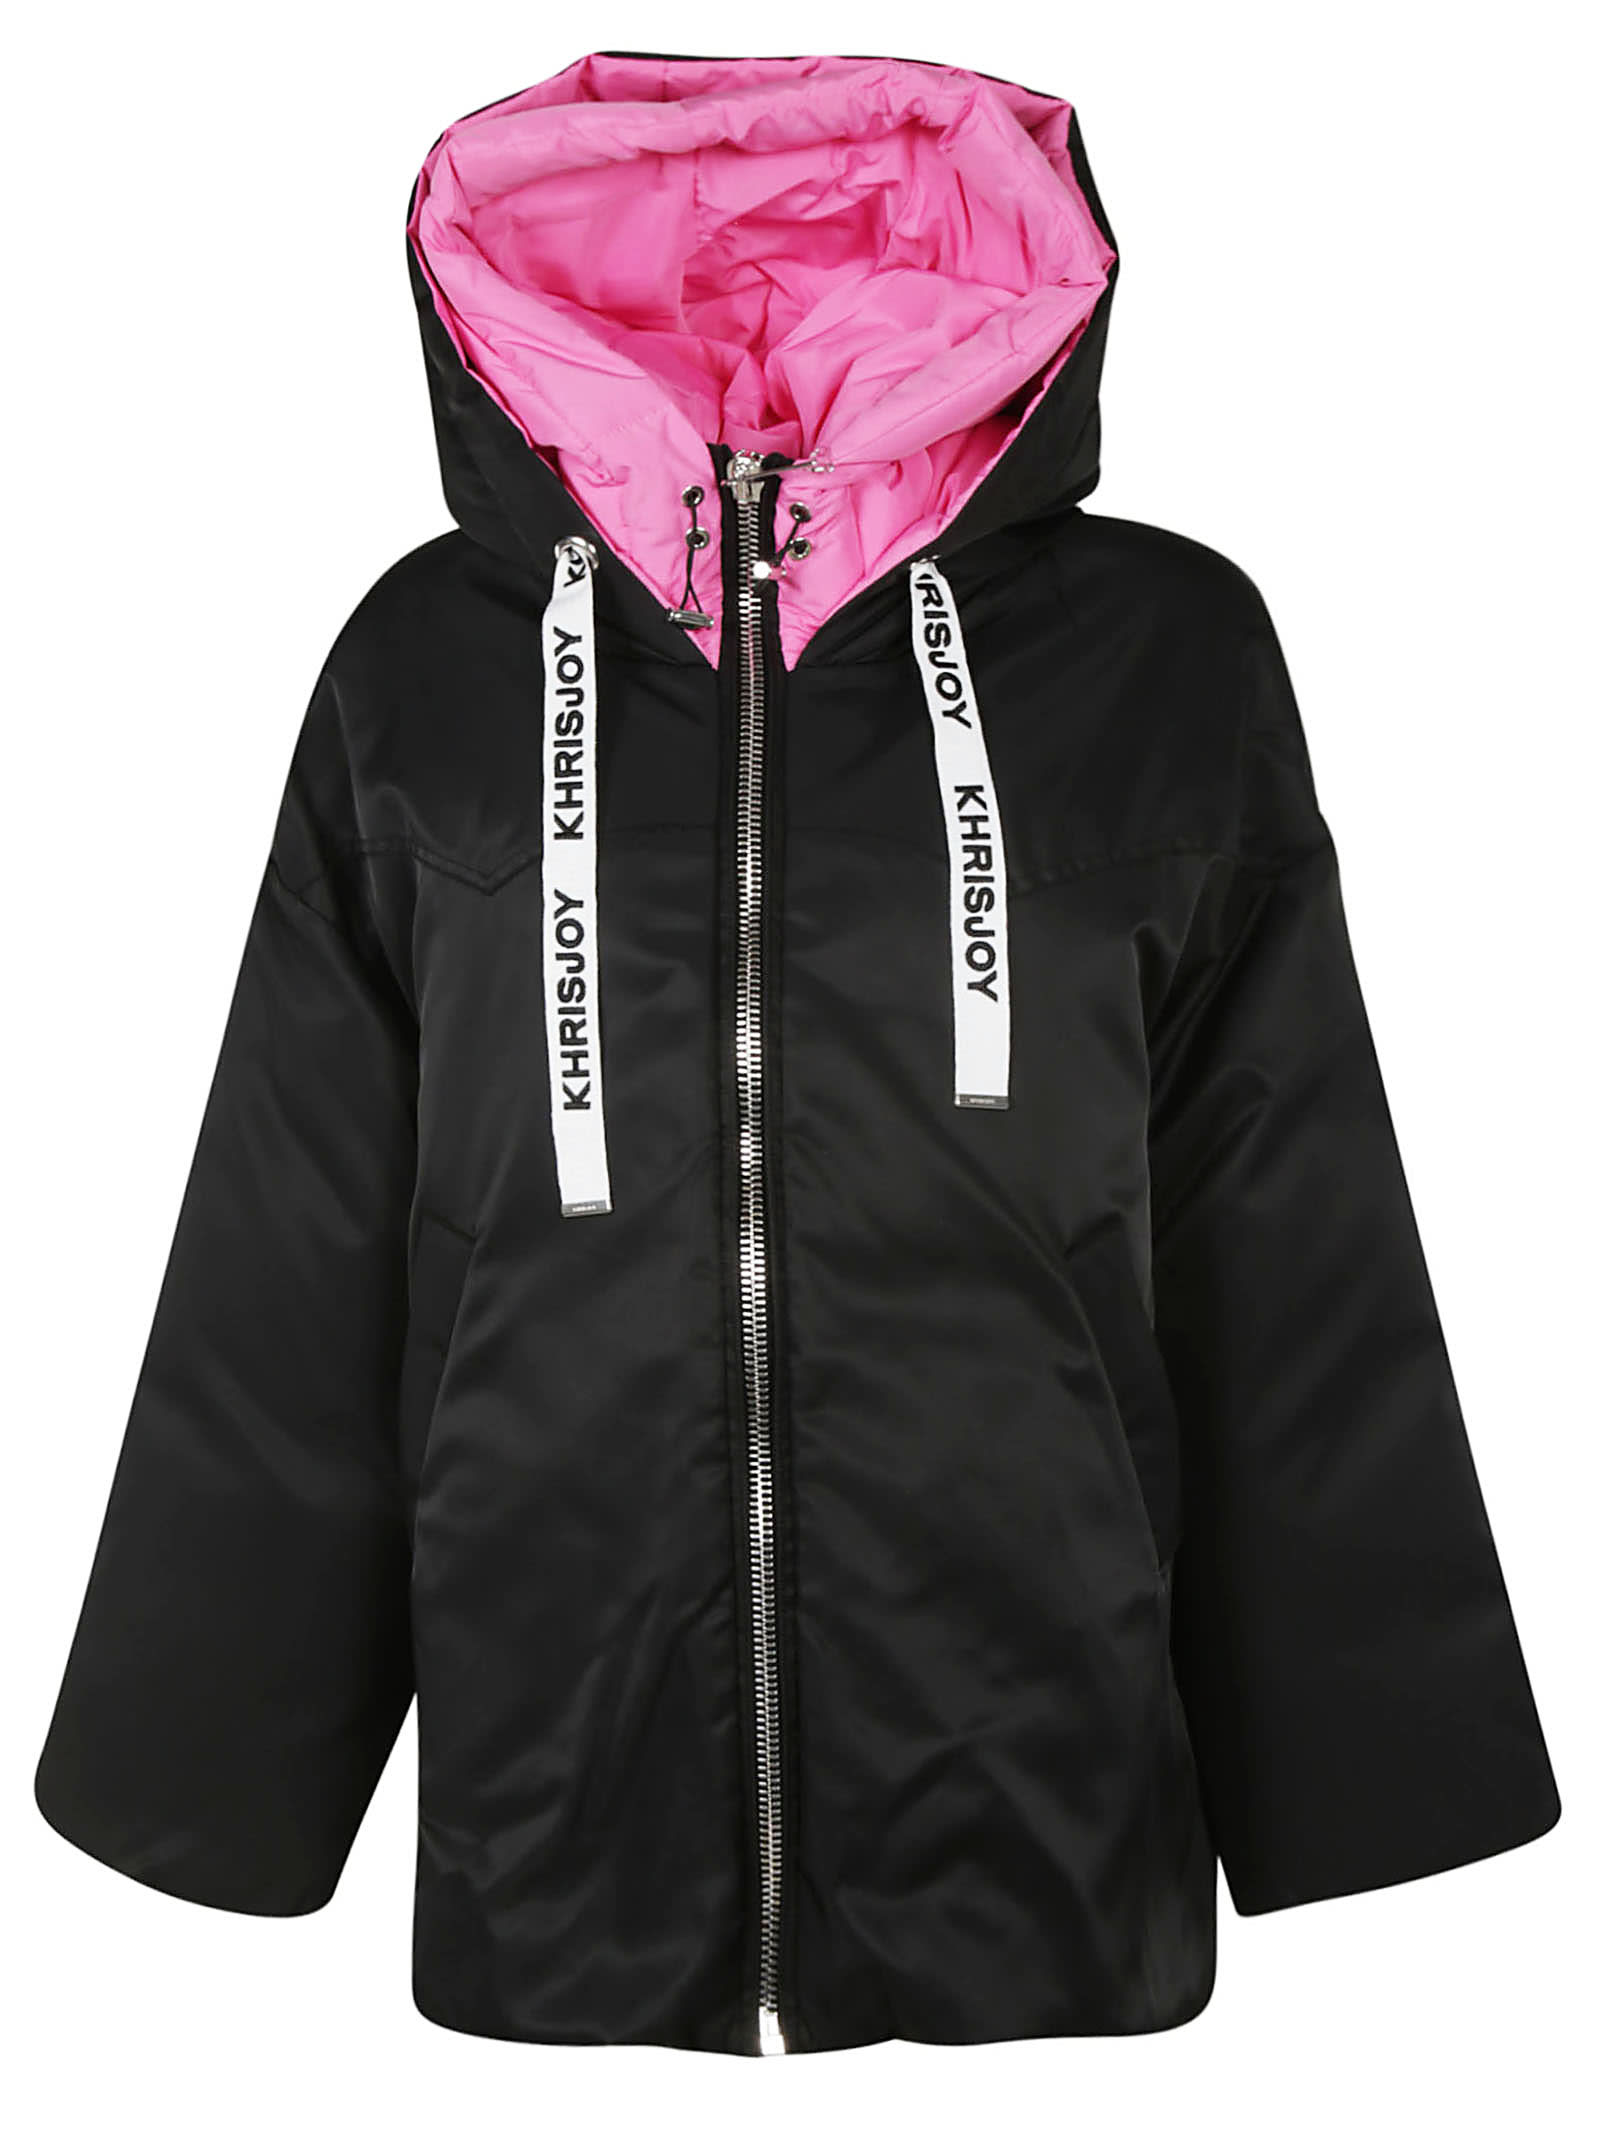 Khrisjoy New Joy Padded Jacket